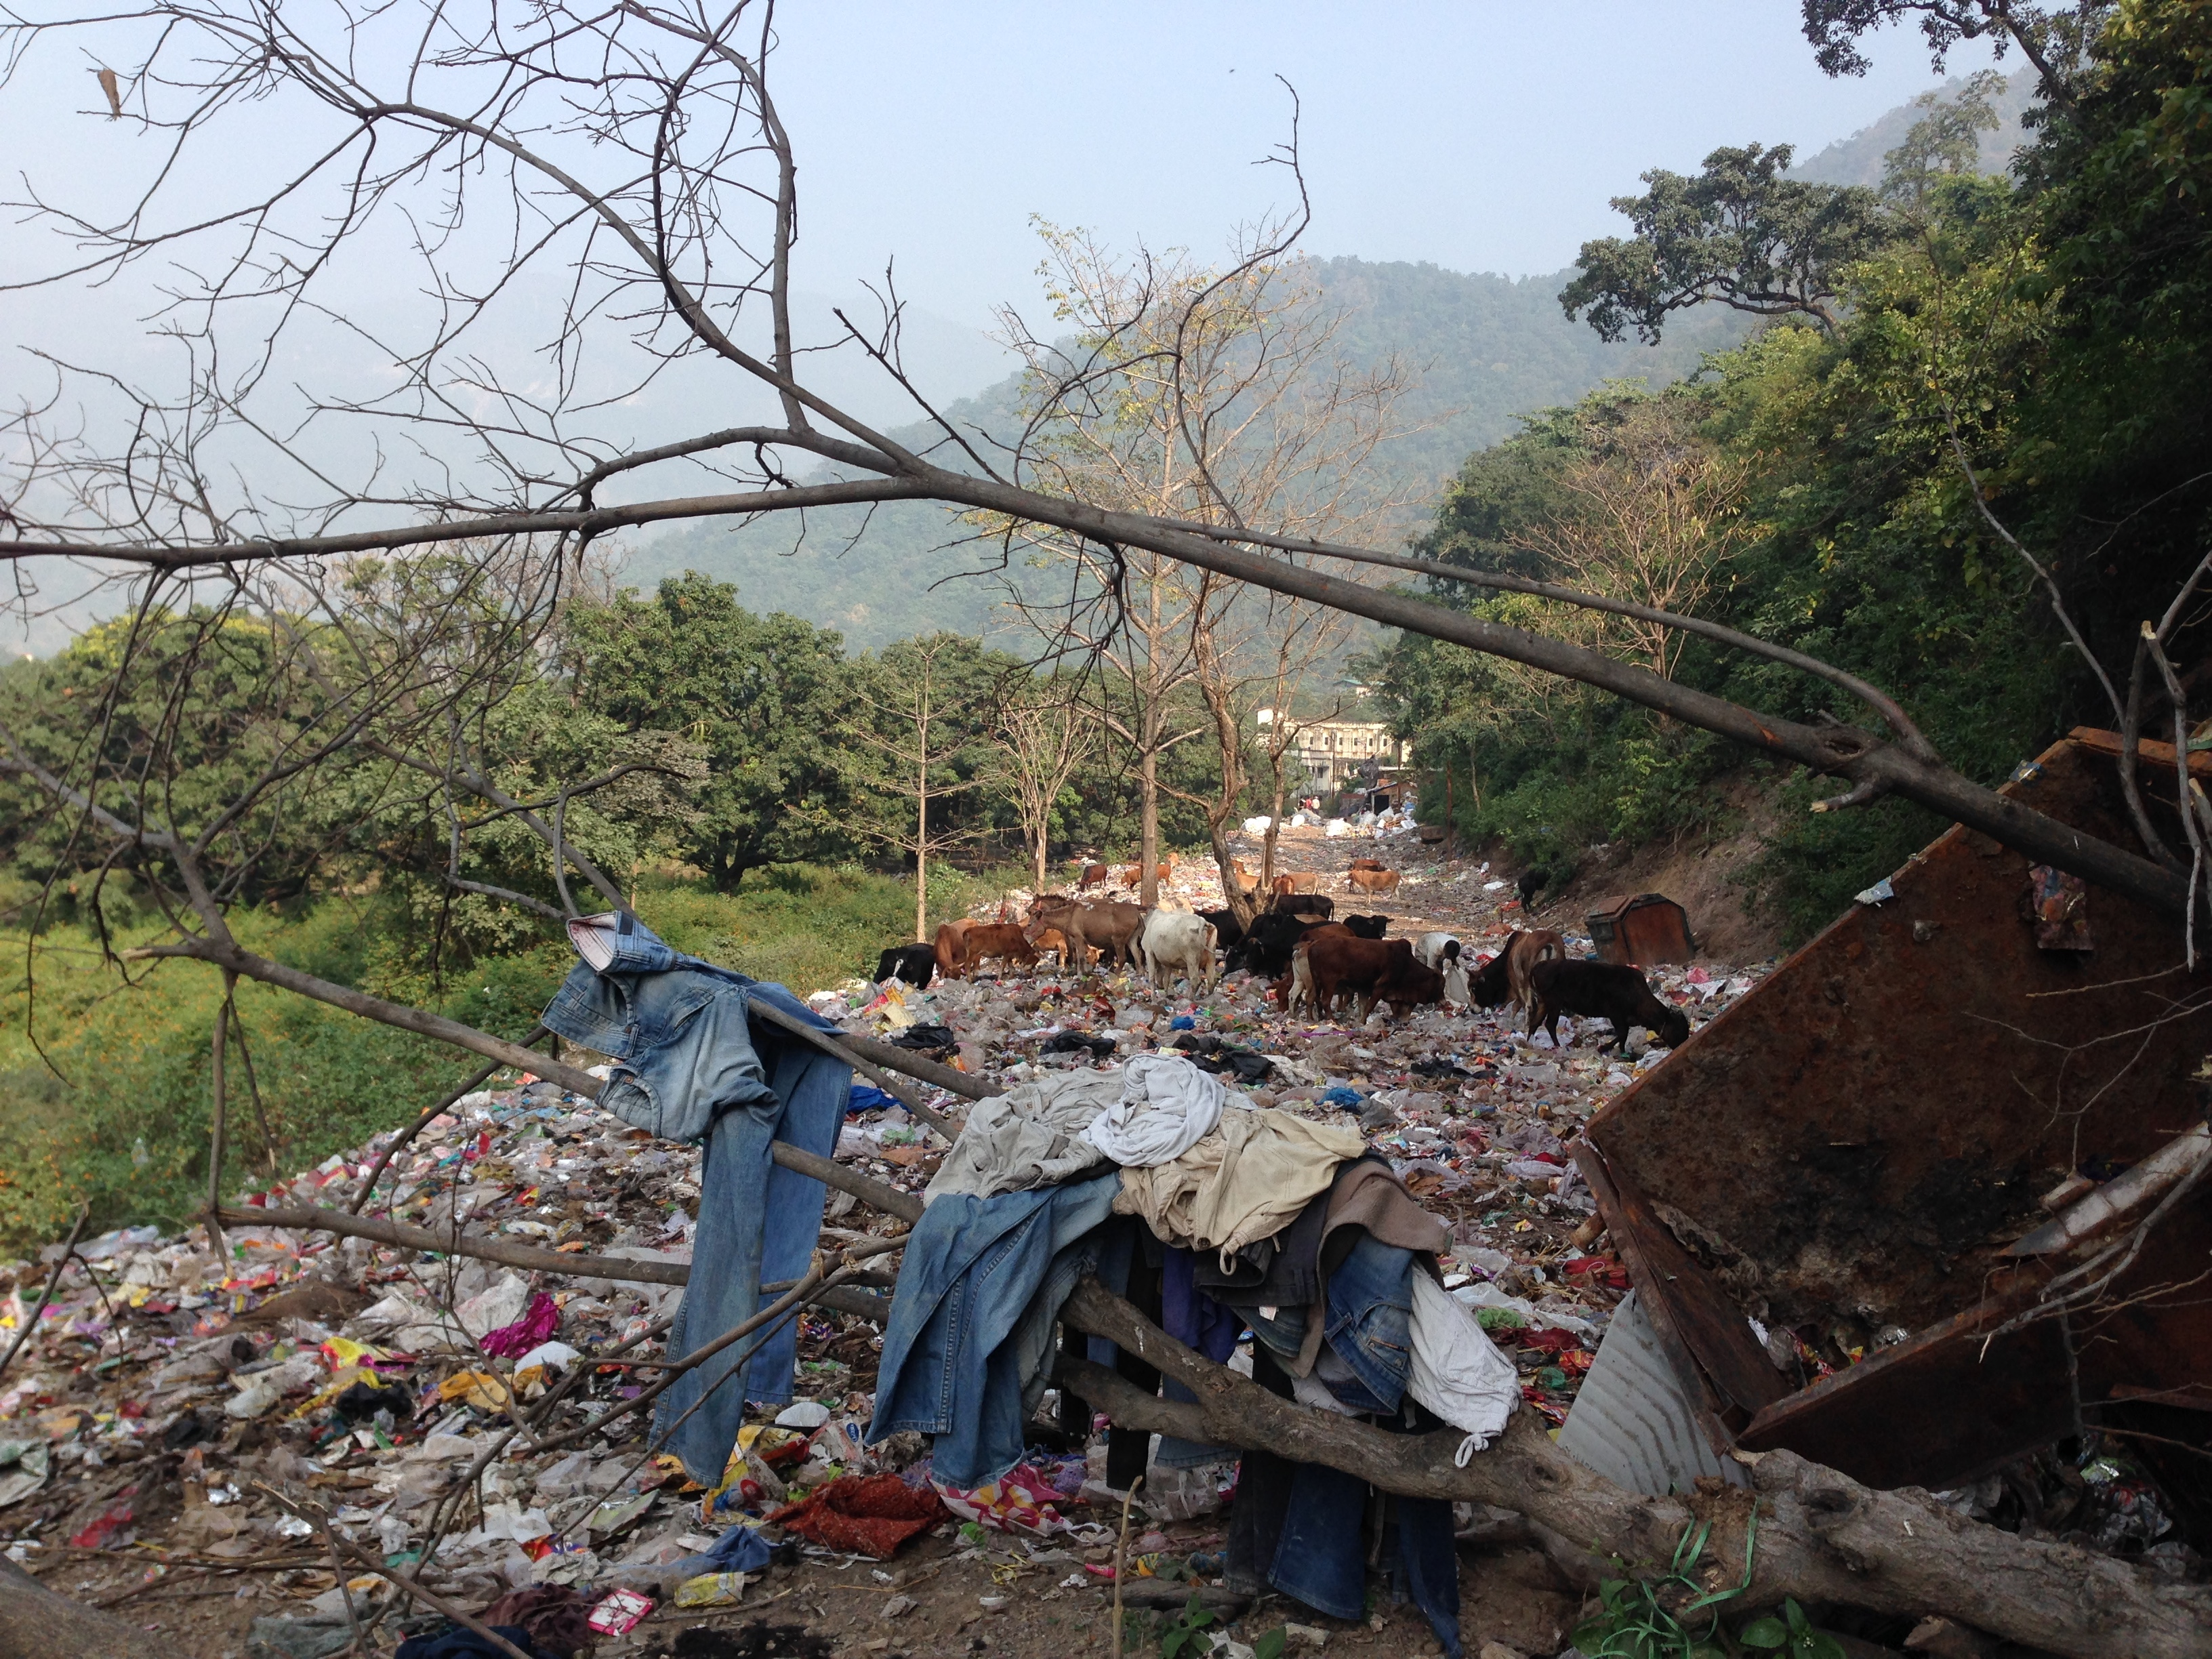 Garbage situation in India, Rishikesh